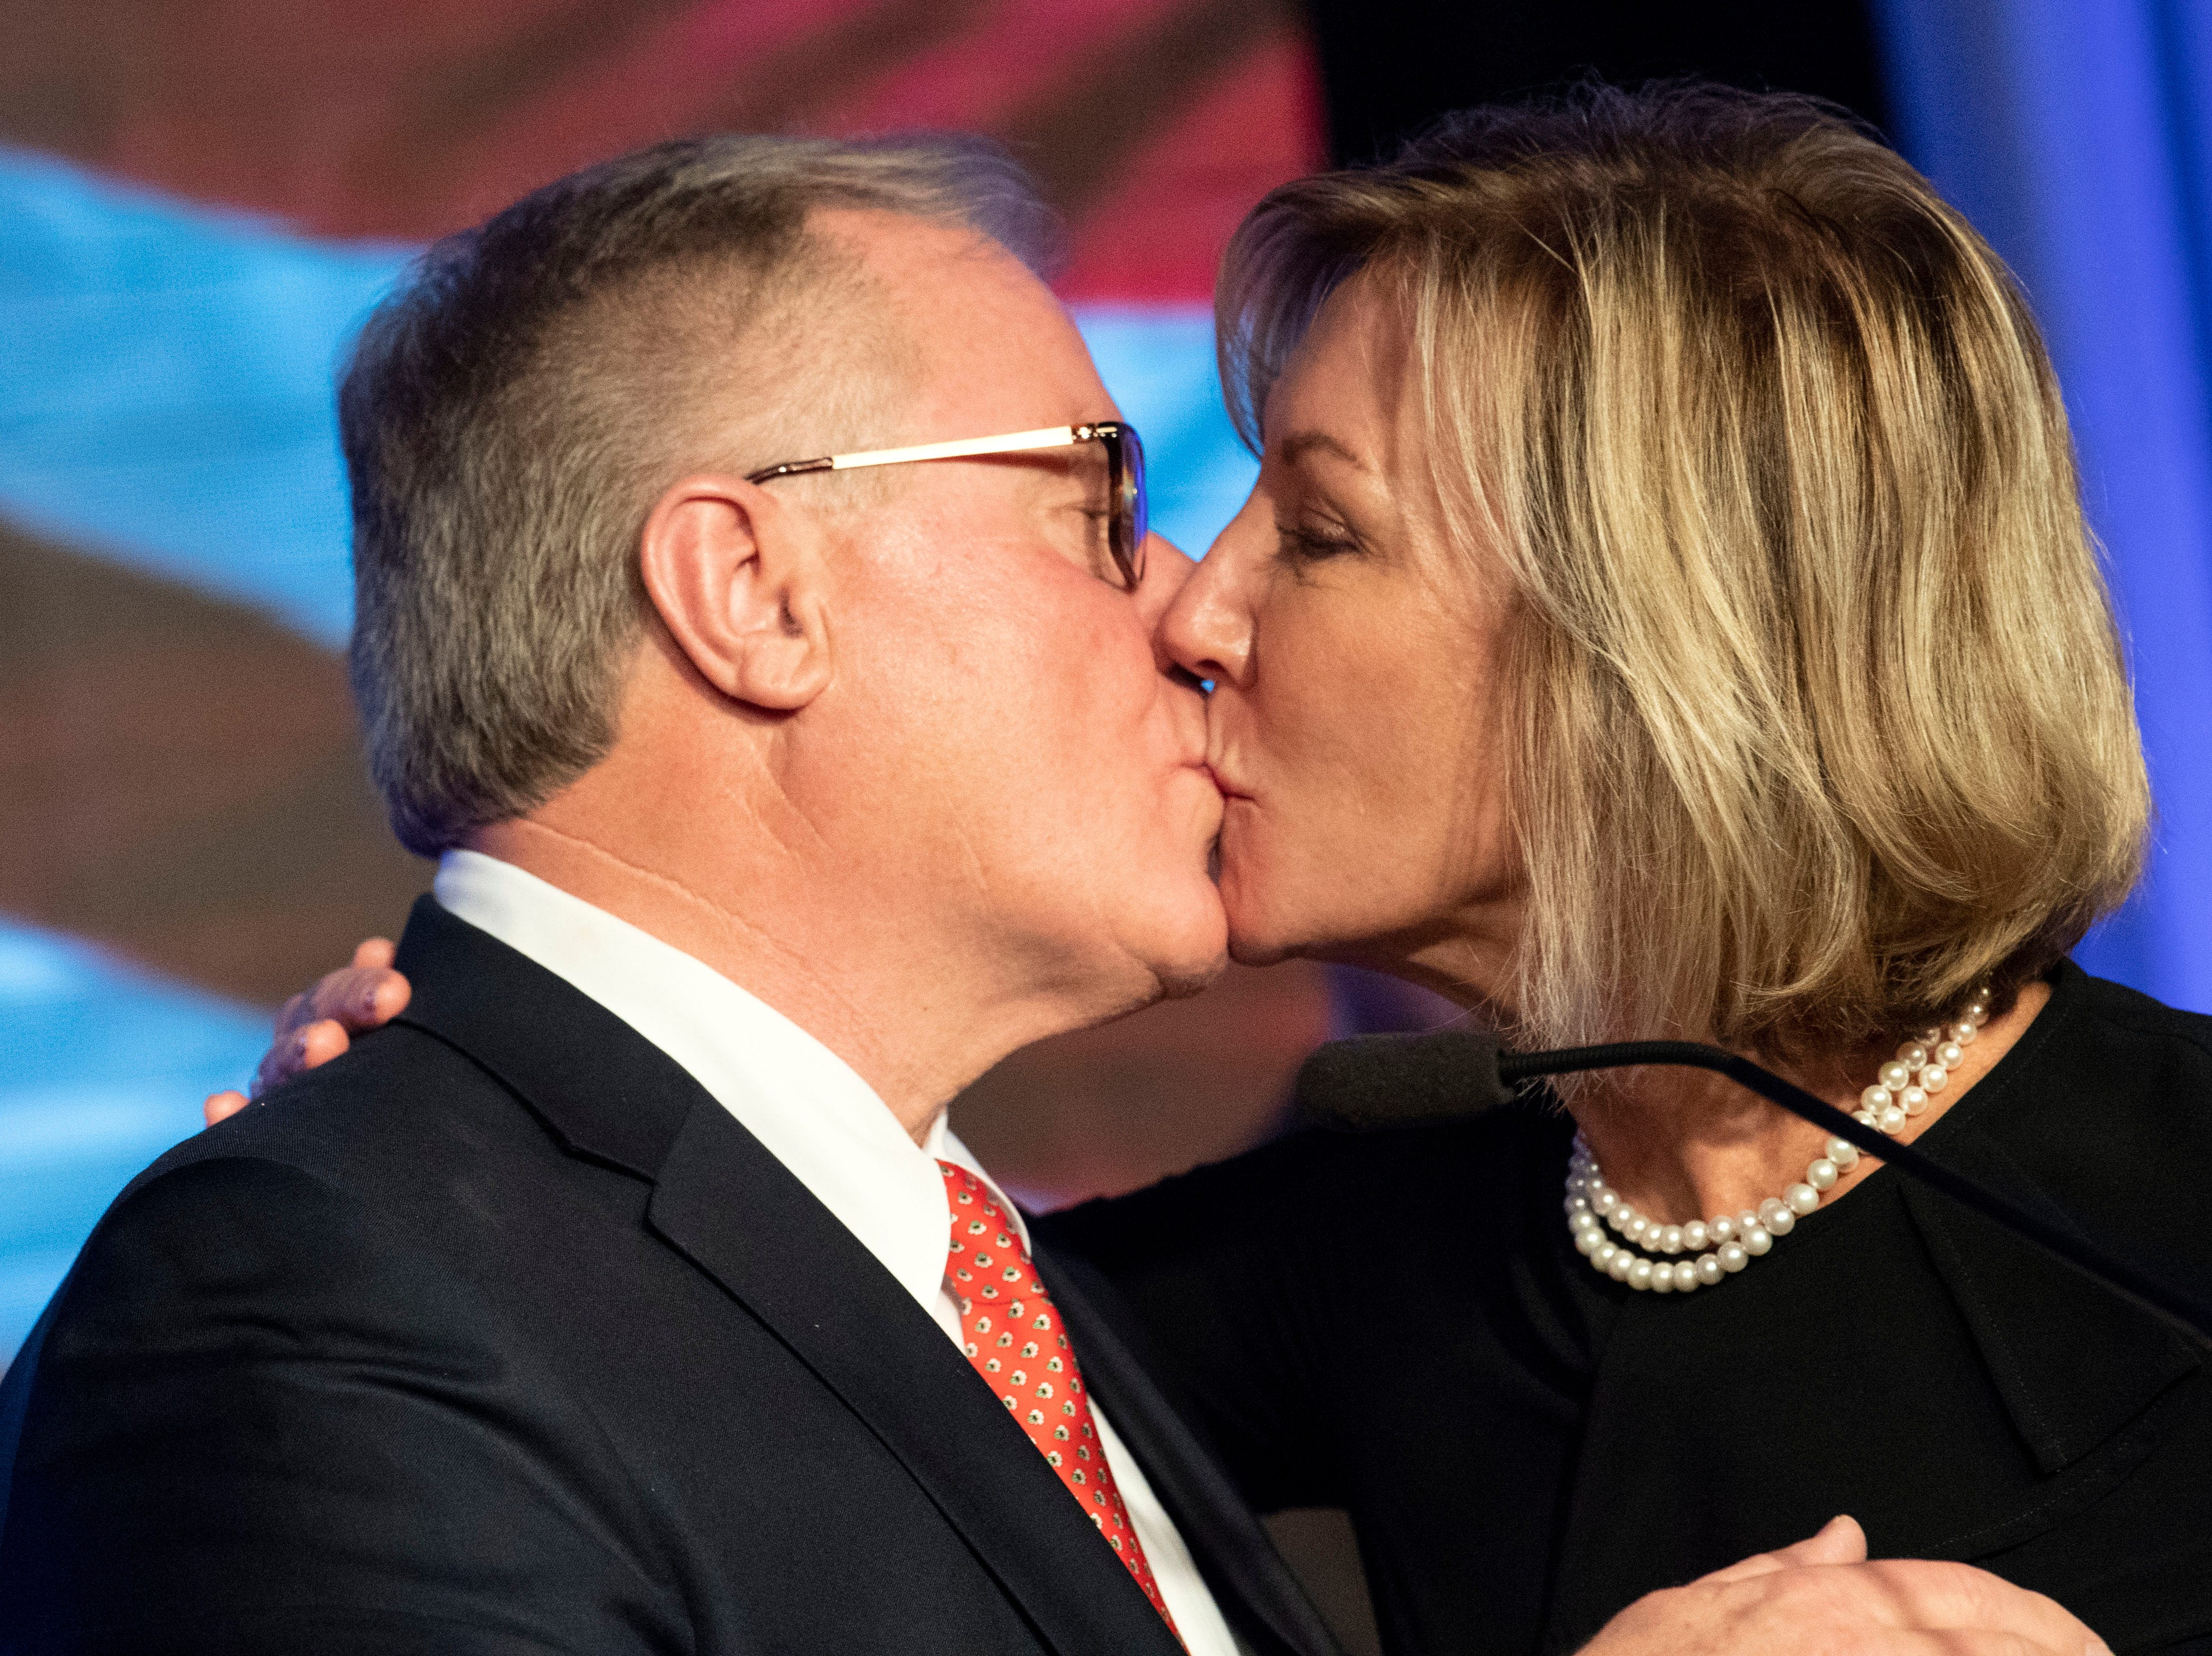 Scott Wagner kisses his wife, Tracy, after giving his concession speech at the Wyndham Garden York hotel on Tuesday, Nov. 6, 2018. Wagner lost to Democratic incumbent Tom Wolf. During his concession speech, Wagner said he's not going anywhere.